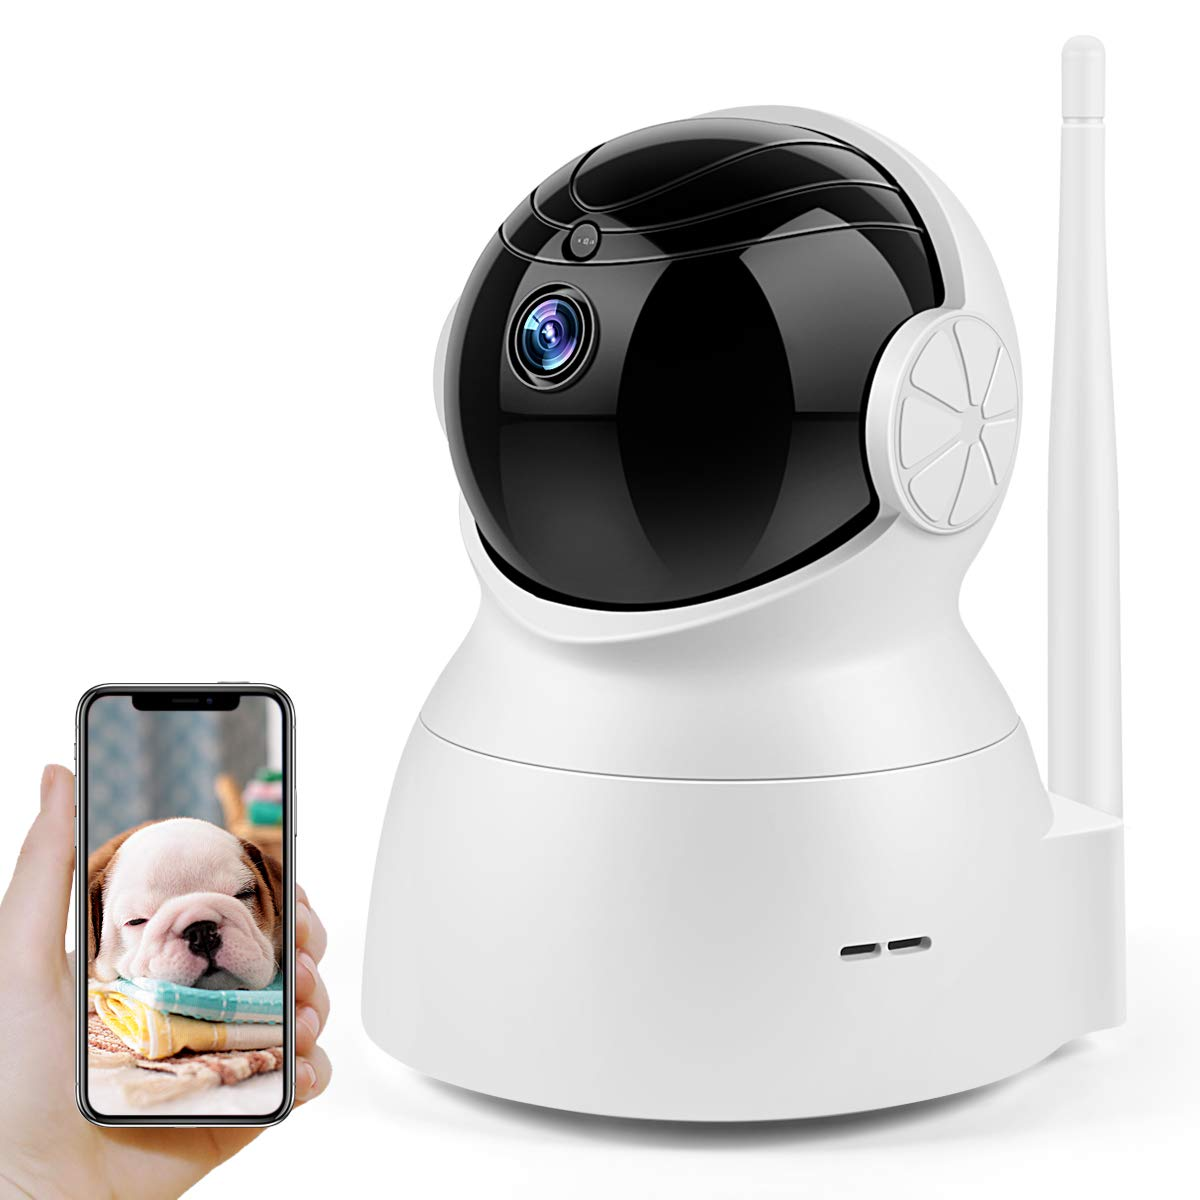 Wireless Security Camera, Home Security Surveillance Video Camera with Two Way Audio, 720P Pan/Tilt Night Vision Baby Monitor, Nanny Cam